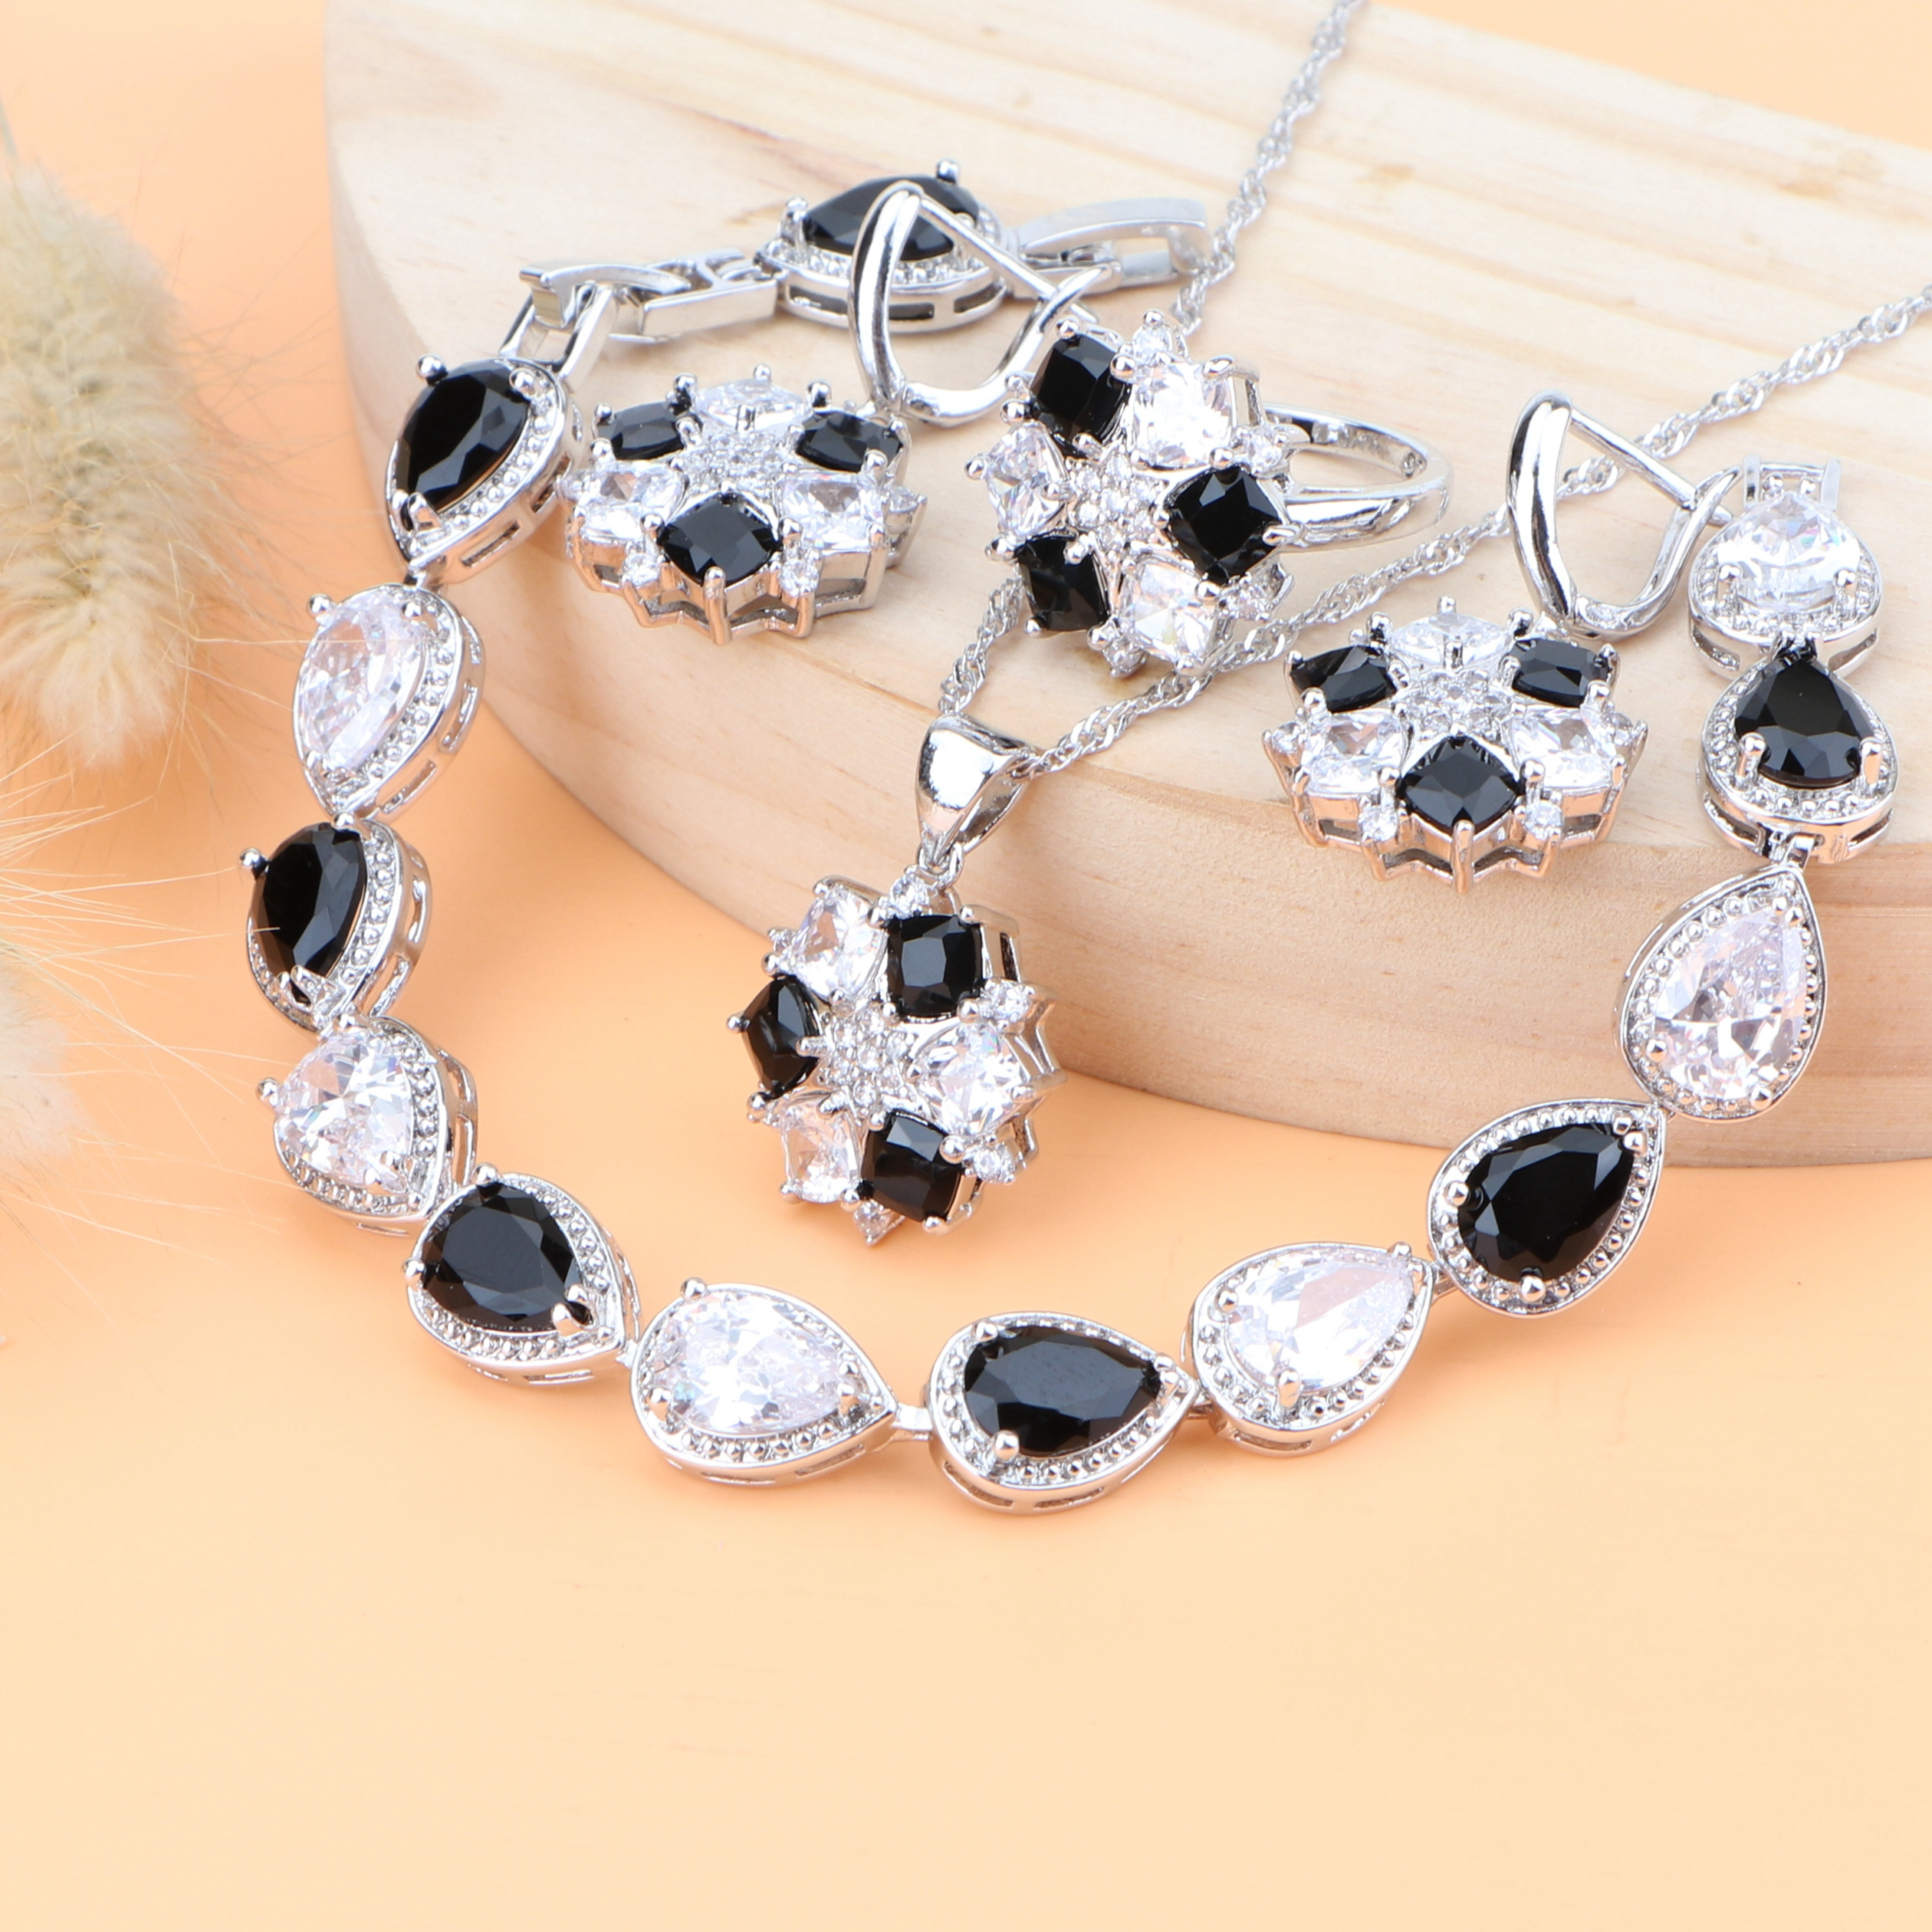 Wedding Black Zircon Silver 925 Bridal Jewelry Sets Earrings With White Stone Costume Jewelry Rings Necklace Set Gifts Box